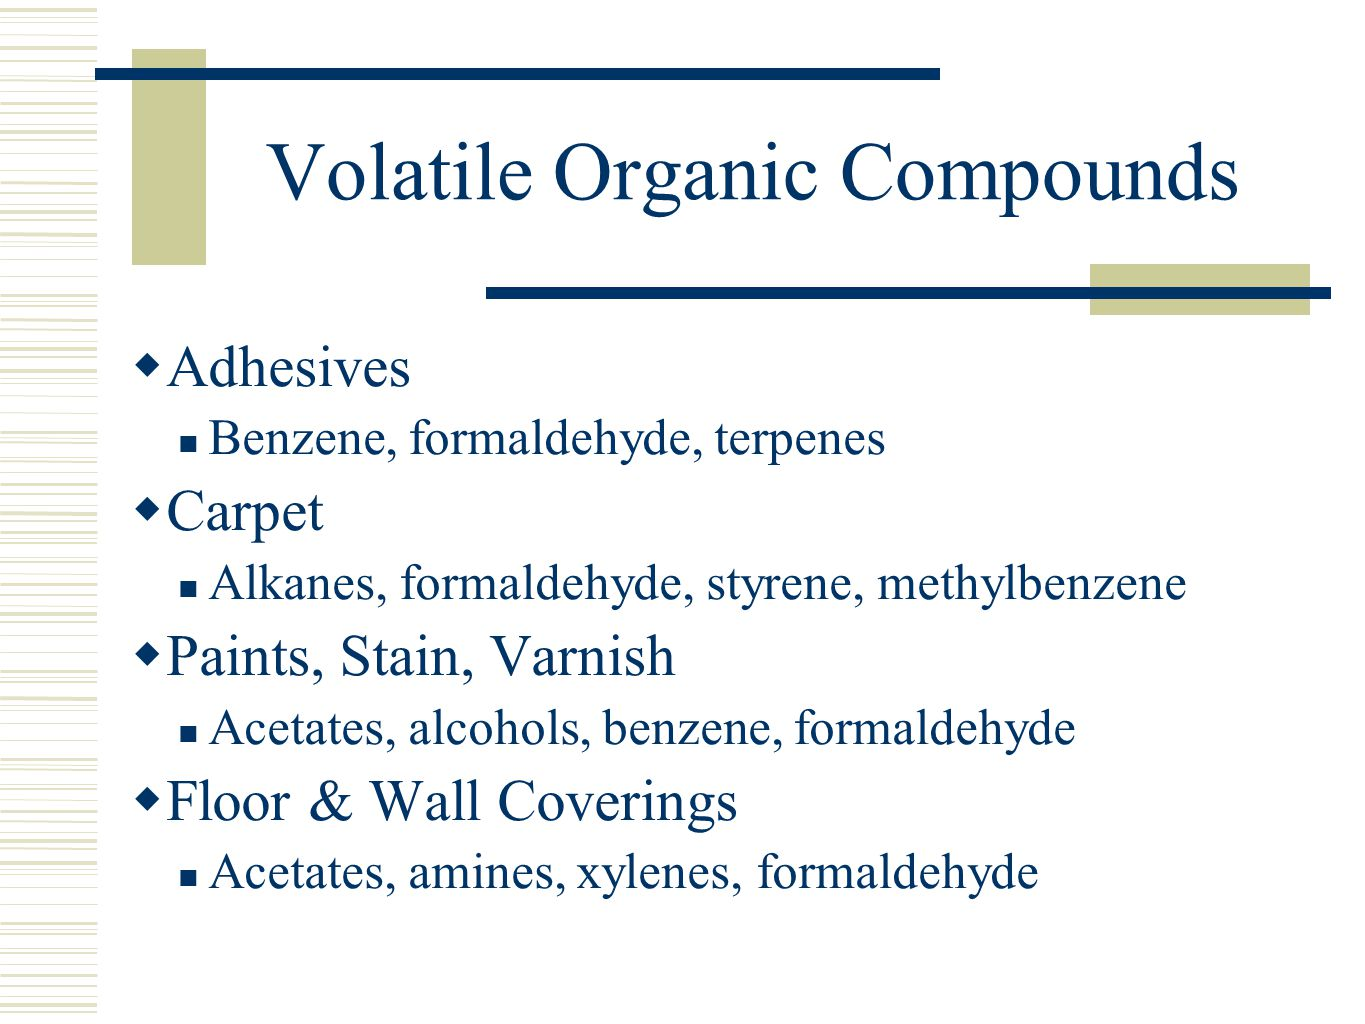 Volatile Organic Compounds  Adhesives Benzene, formaldehyde, terpenes  Carpet Alkanes, formaldehyde, styrene, methylbenzene  Paints, Stain, Varnish Acetates, alcohols, benzene, formaldehyde  Floor & Wall Coverings Acetates, amines, xylenes, formaldehyde